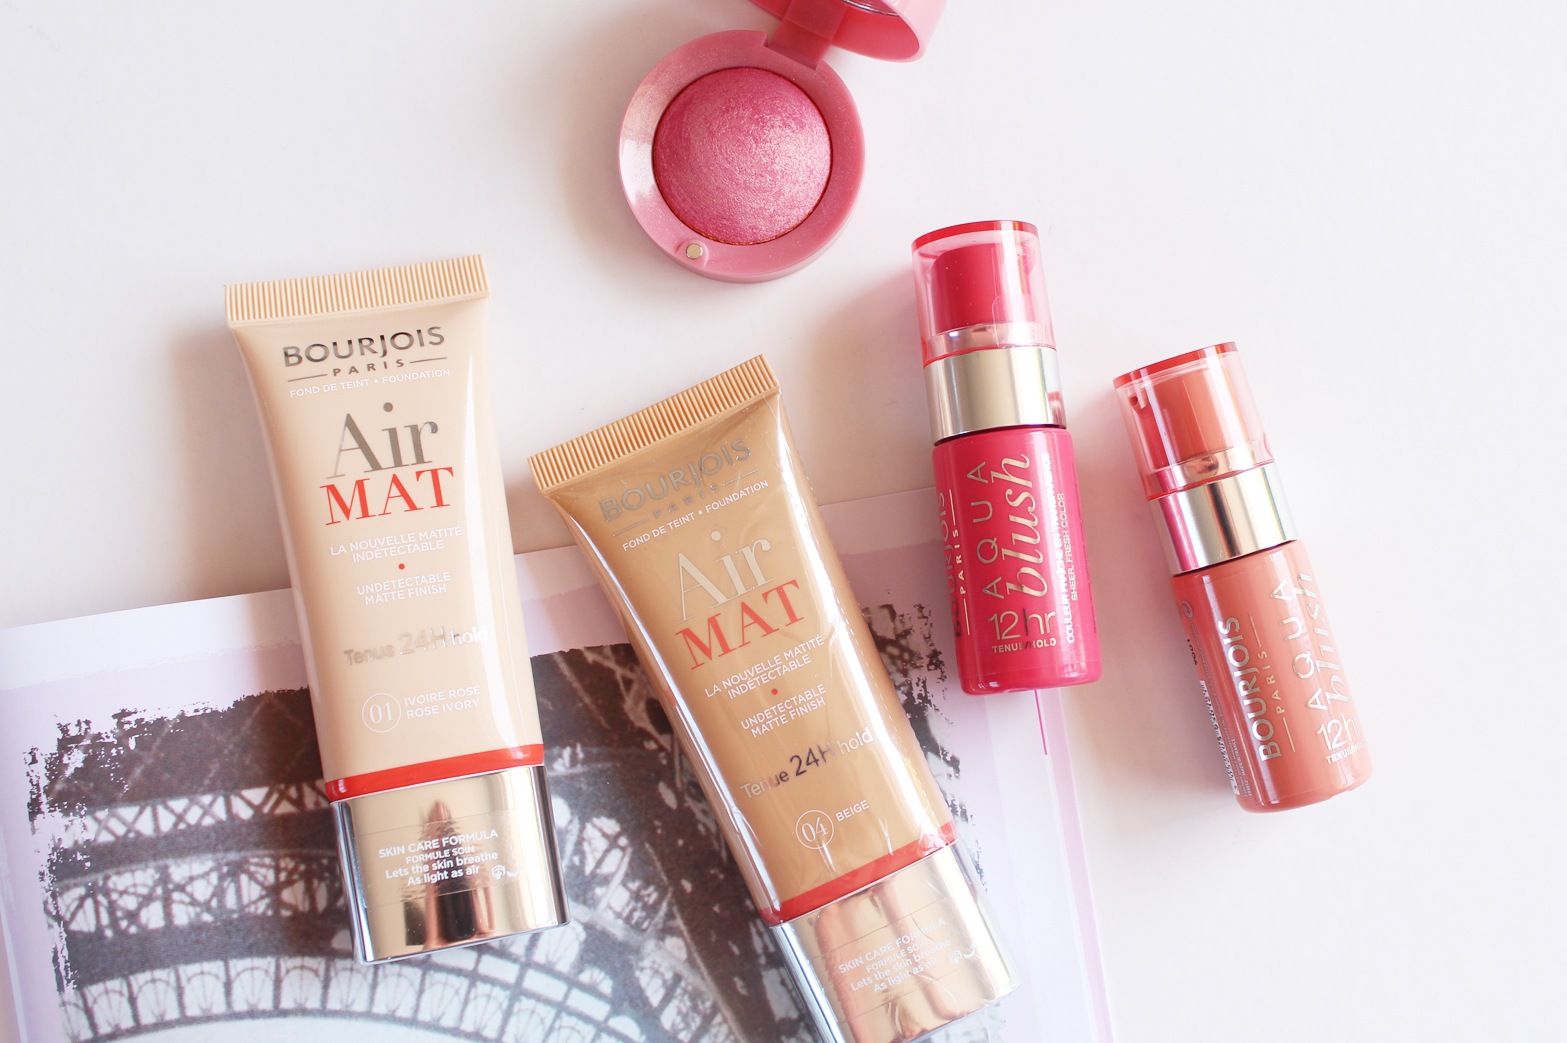 BOURJOIS PARIS | Upcoming Releases + First Impressions - CassandraMyee